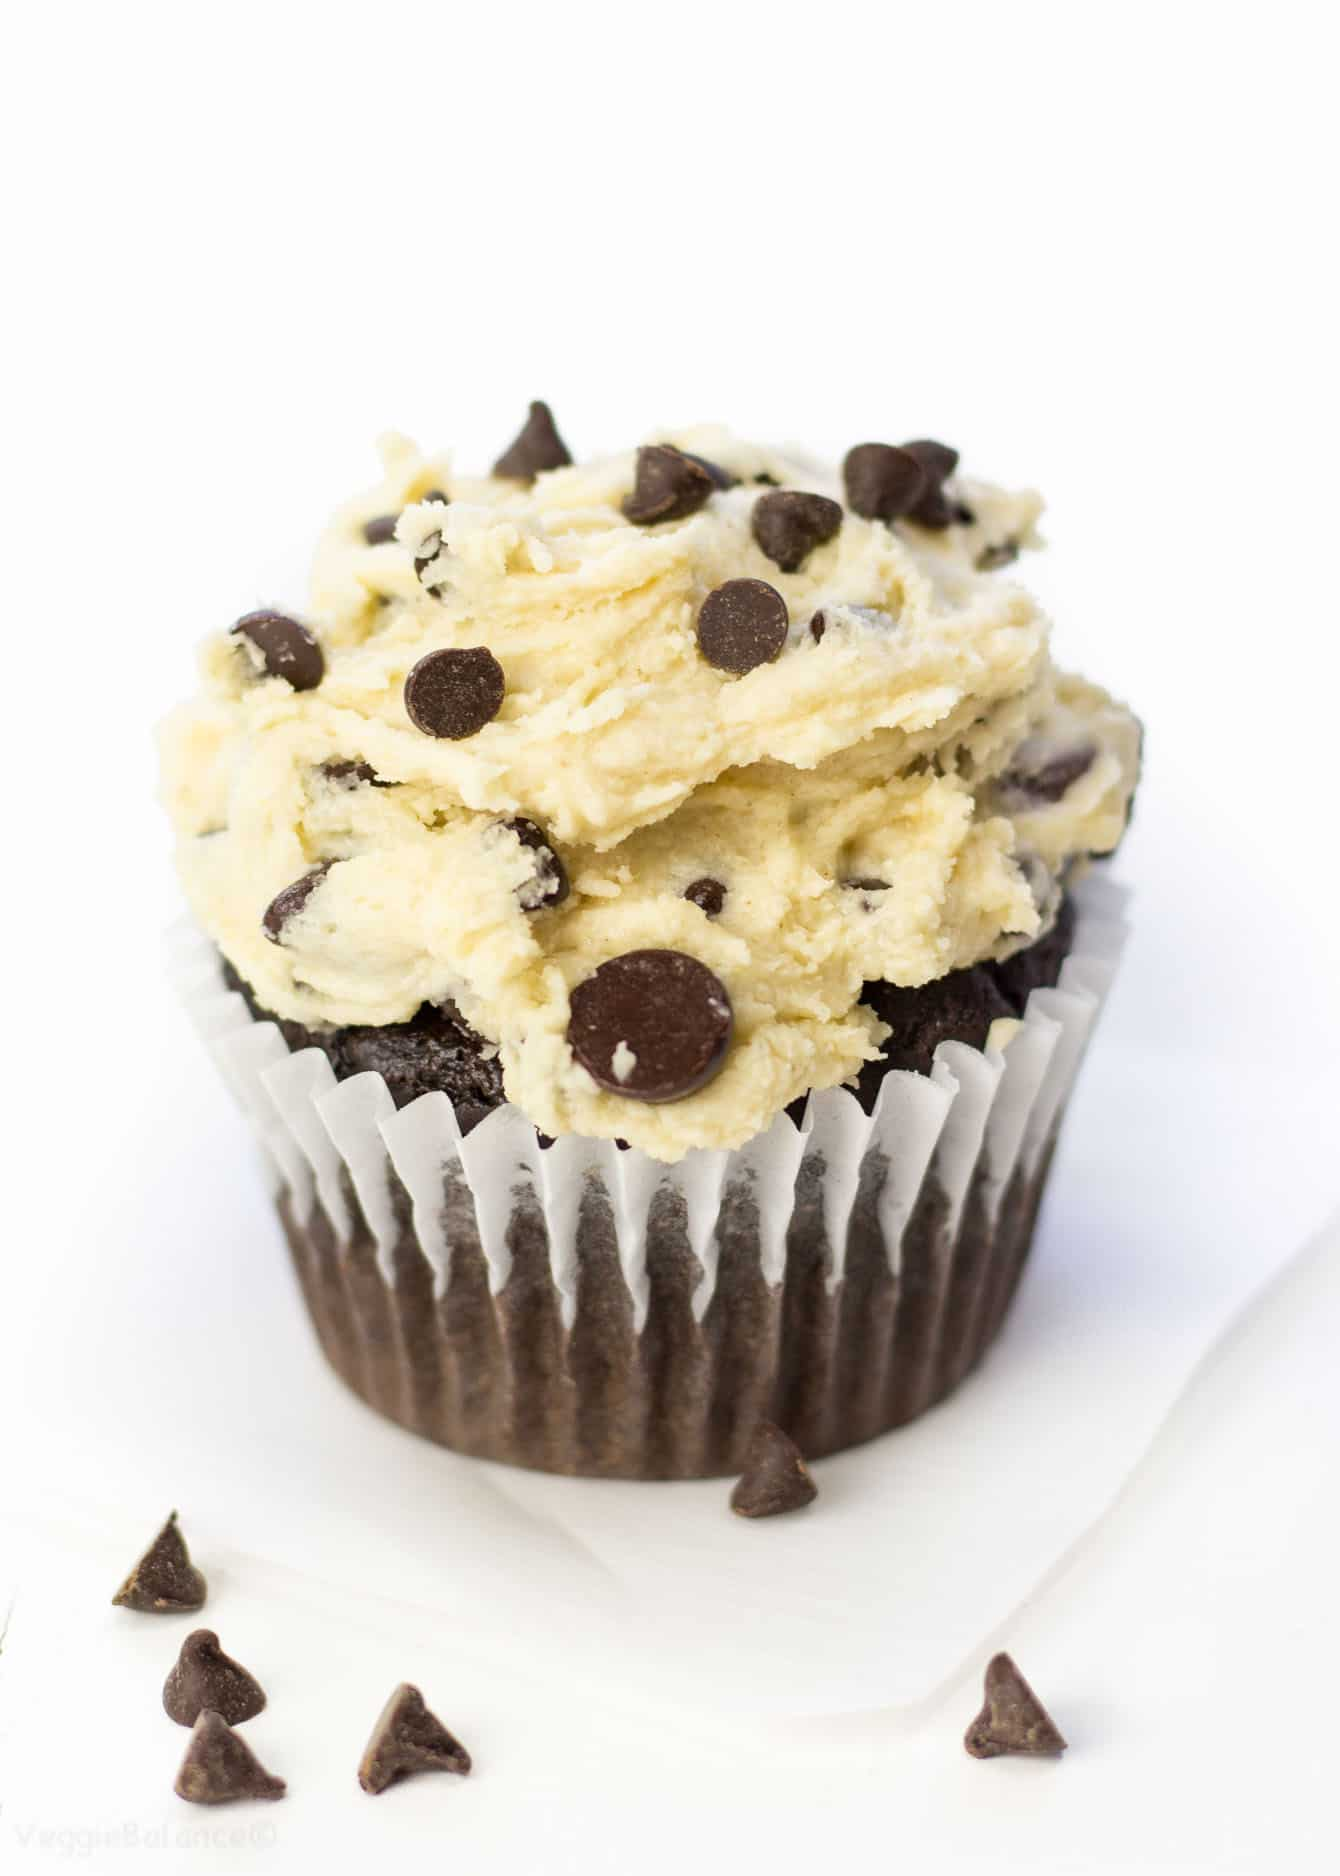 Chocolate Chip Cookie Dough Cupcakes are exactly what I'd like for my birthday, pretty please! Moist gluten free chocolate cake topped with cookie dough frosting. It's a cookie dough lover's dream. (Gluten-free, Dairy-Free, Vegan)